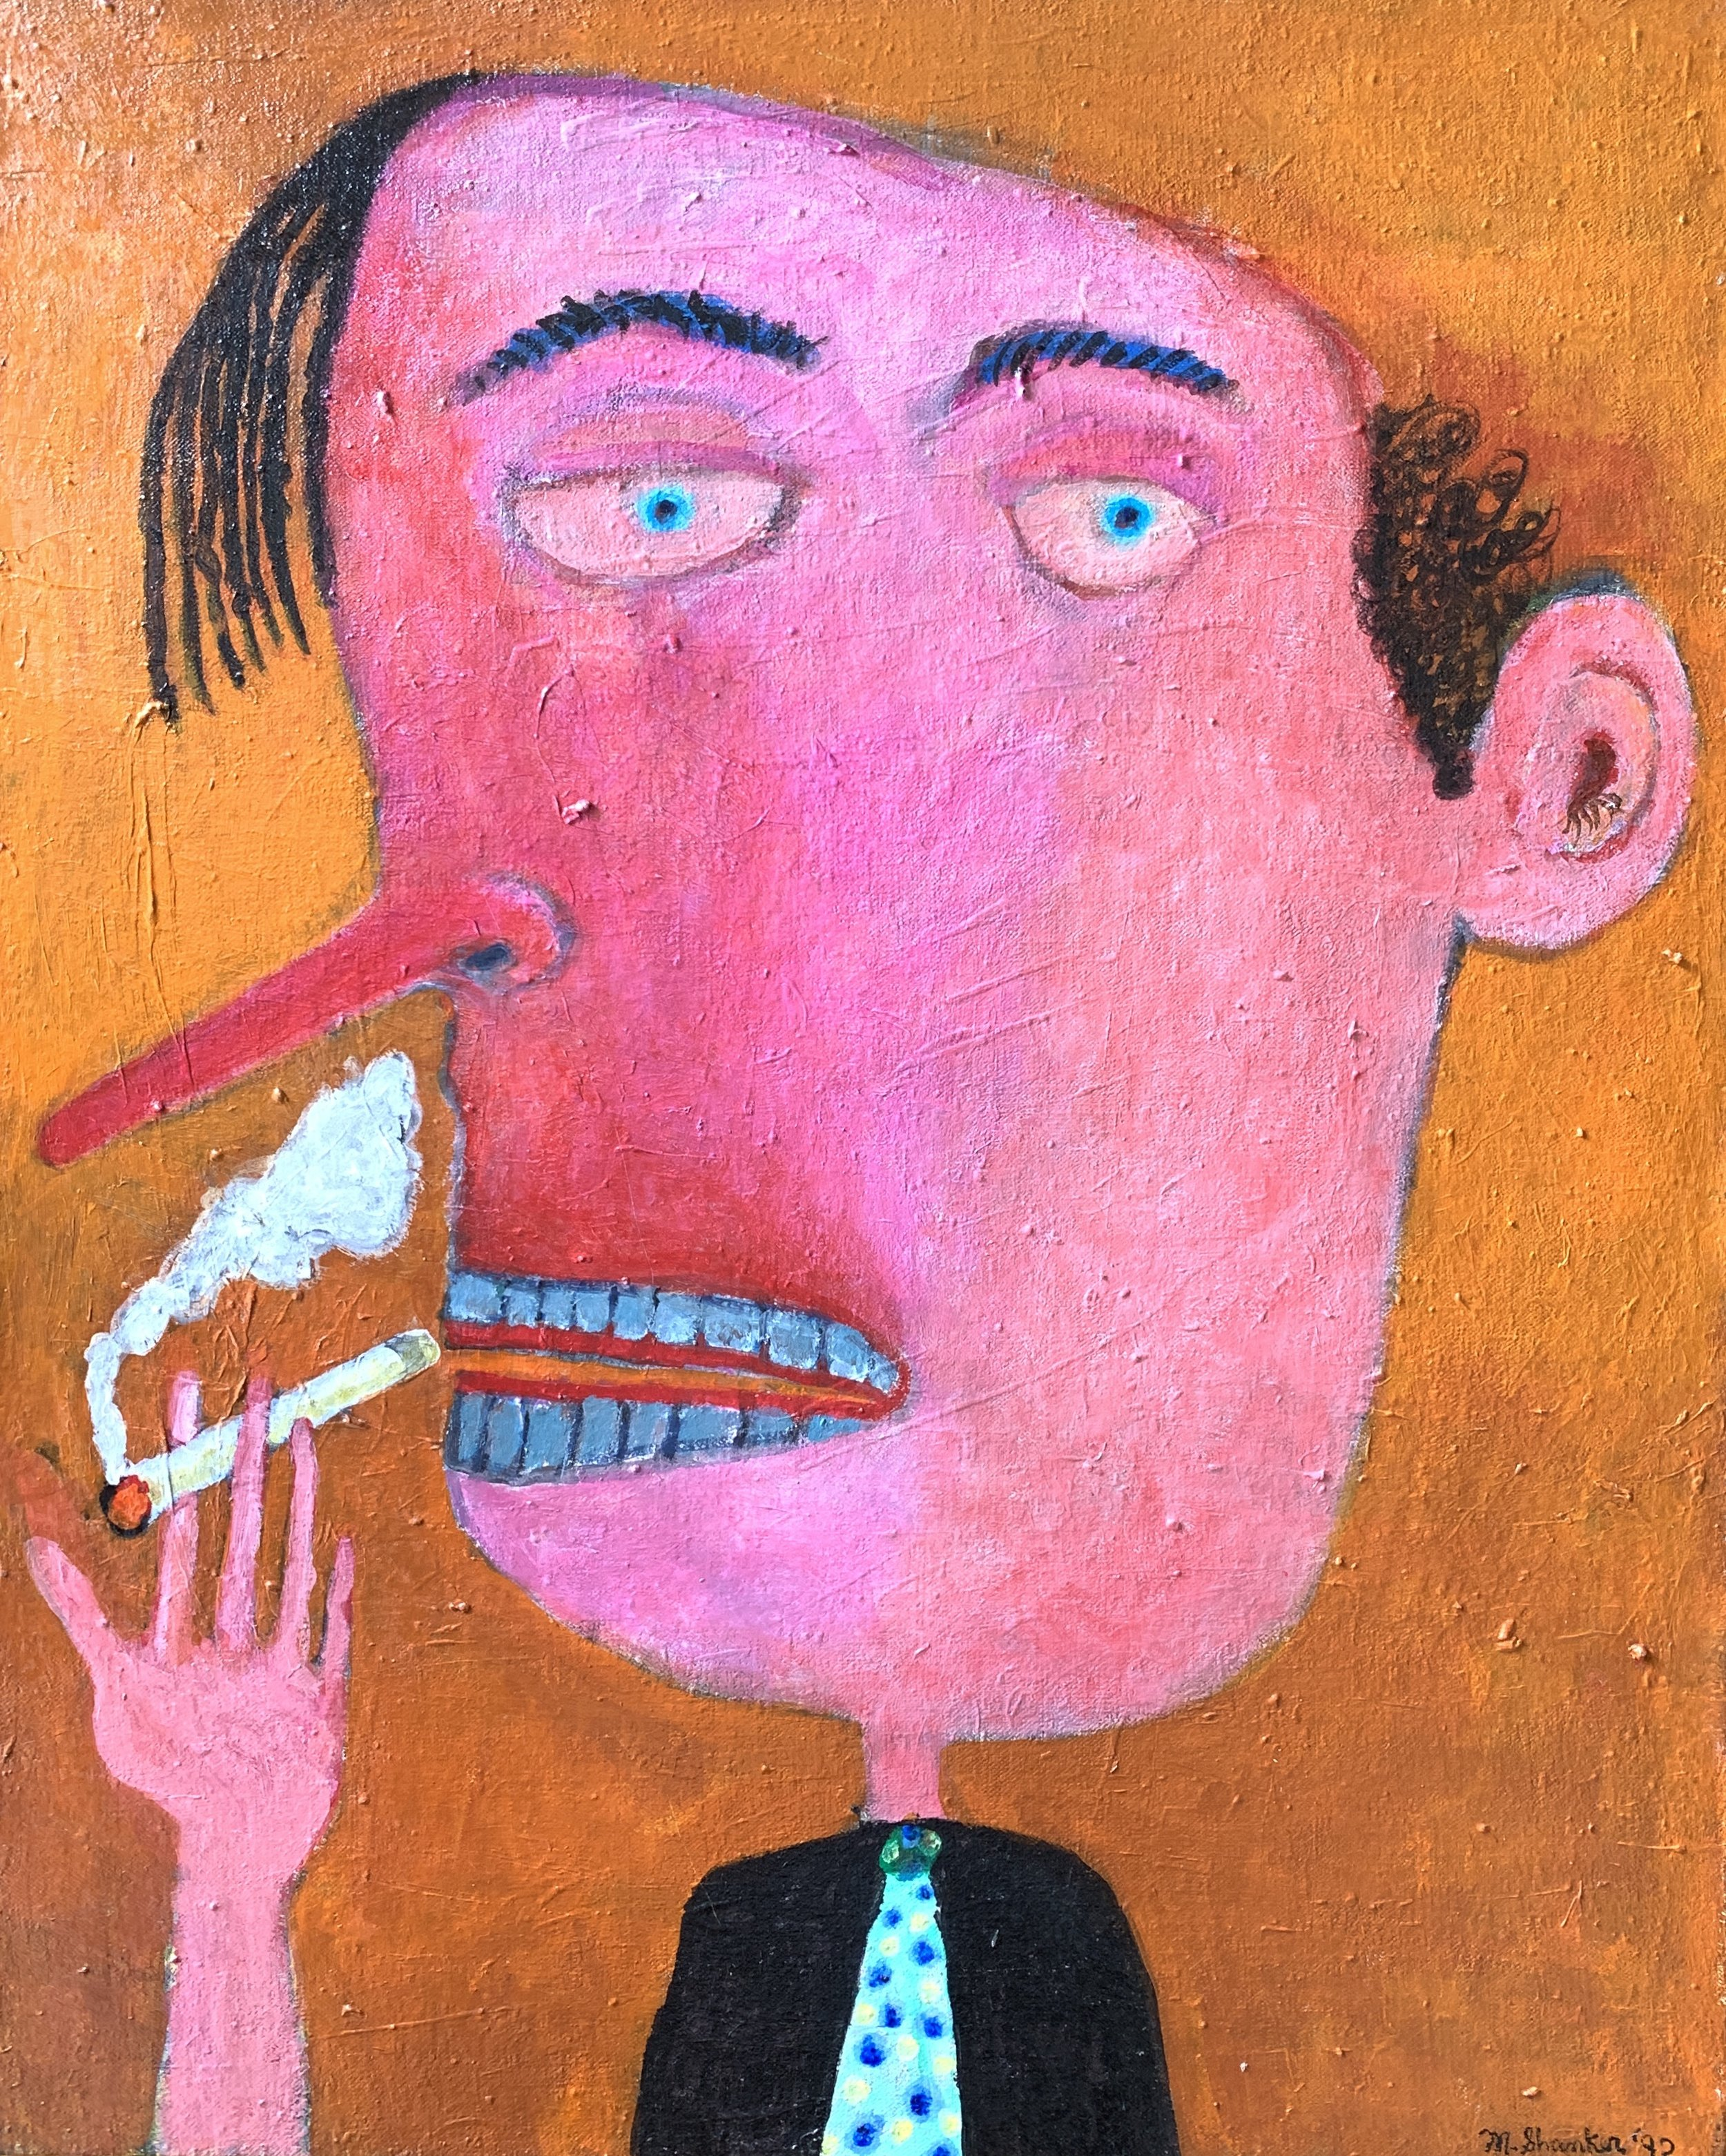 Man with Cigarette, 1992